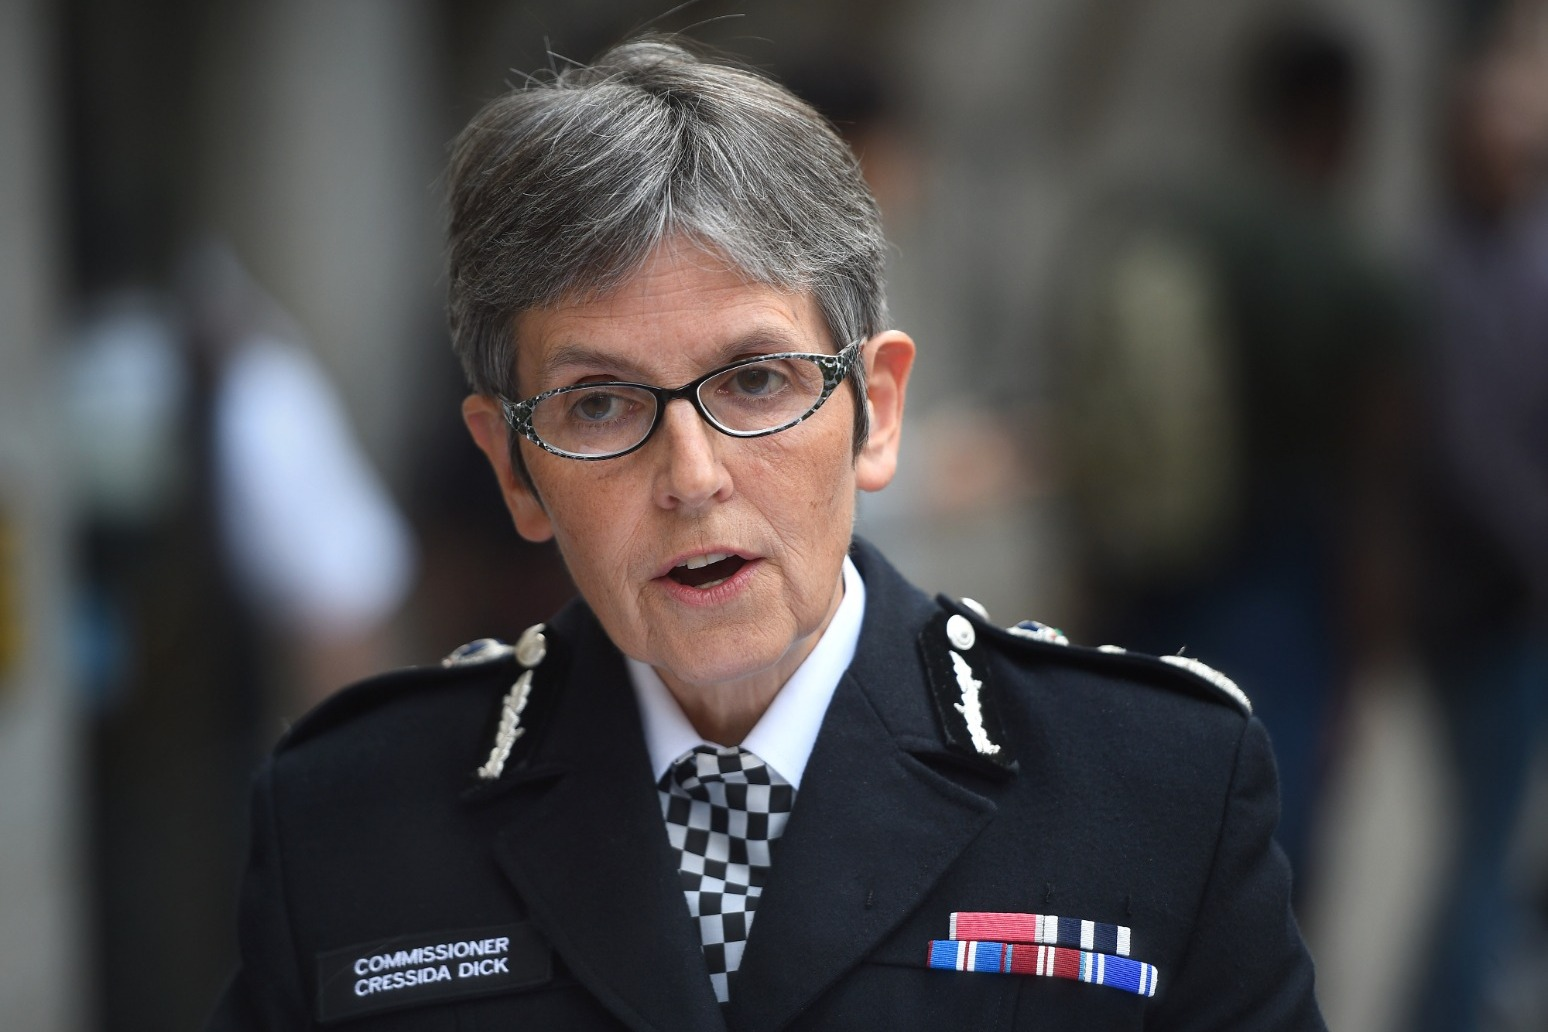 Assaults on officers at anti-racism rally 'shocking' – Met Police chief